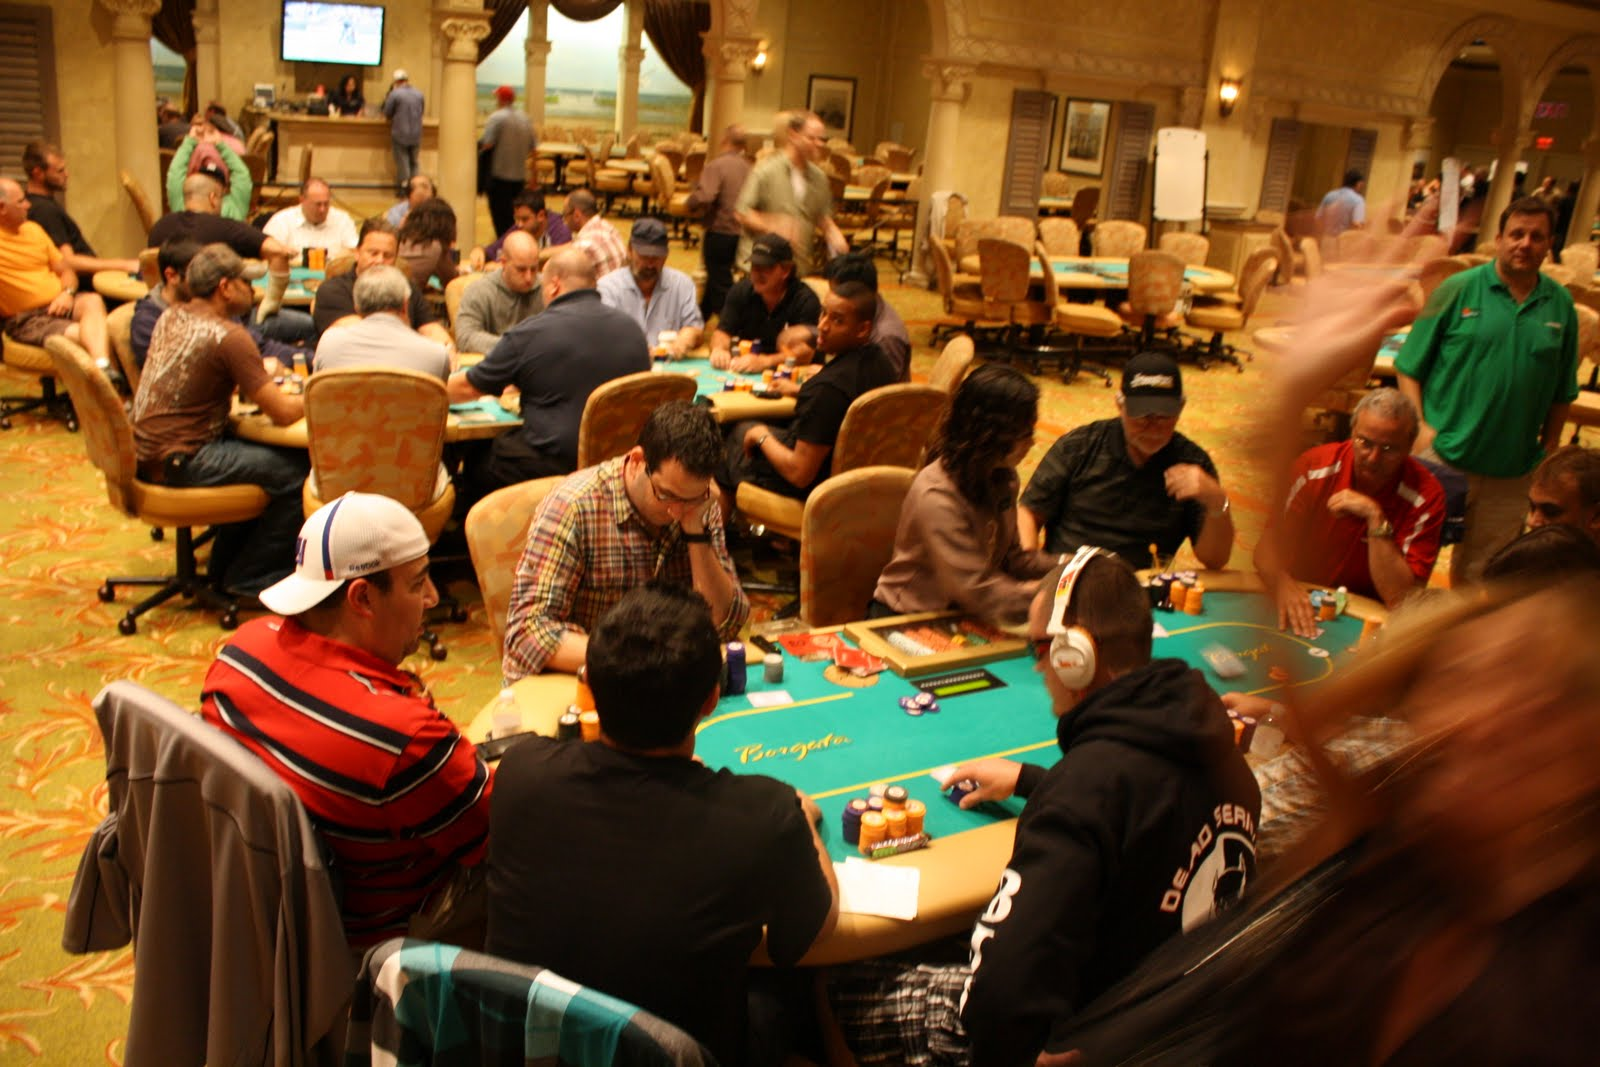 Seabrook poker room tournament schedule online casino monte carlo erfahrungen